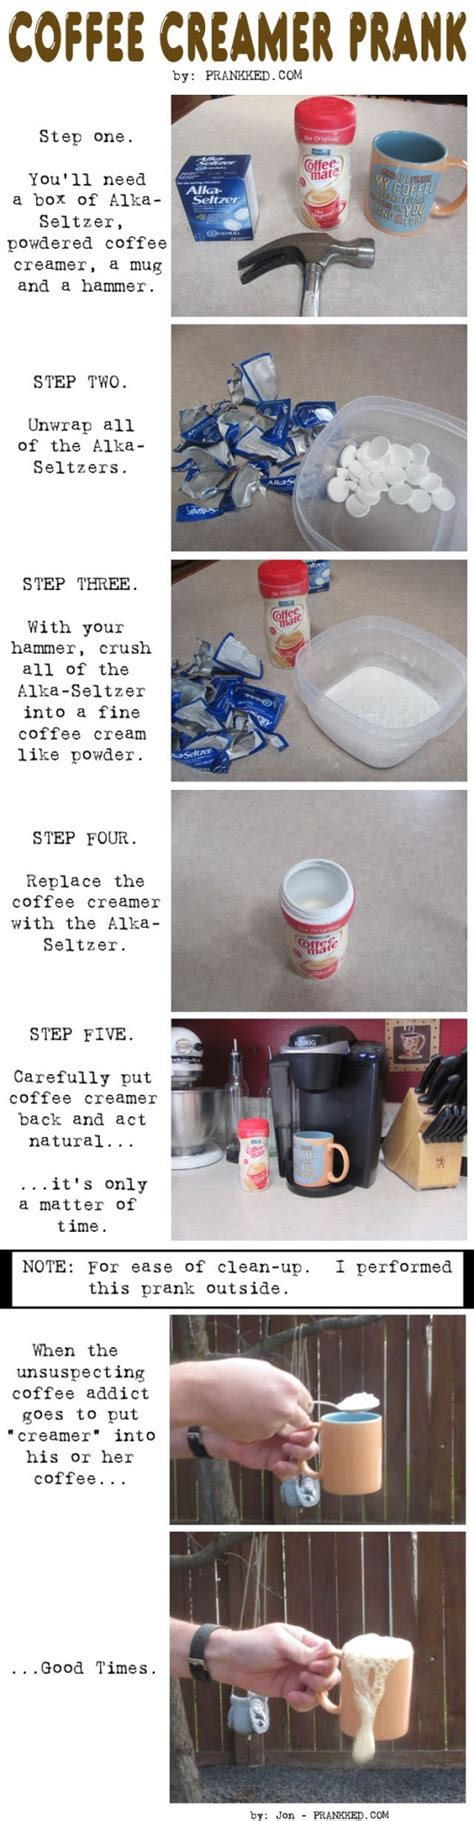 bedroom pranks ideas 85 best images about birthday pranks on pinterest birthday pranks the office and